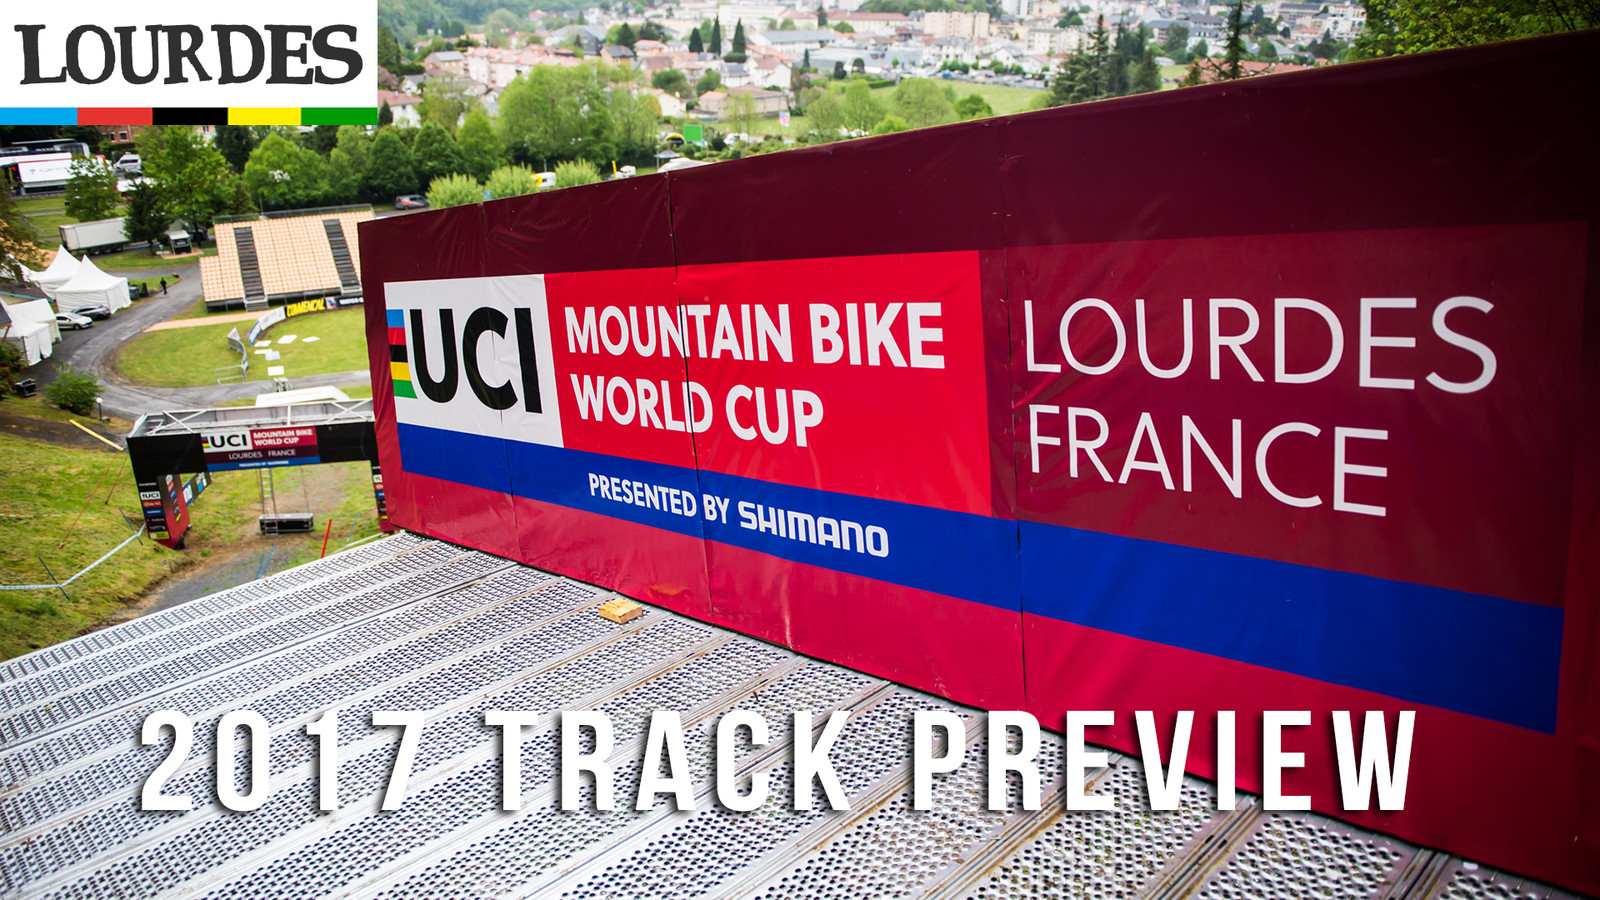 Lourdes World Cup: 2017 Track Preview